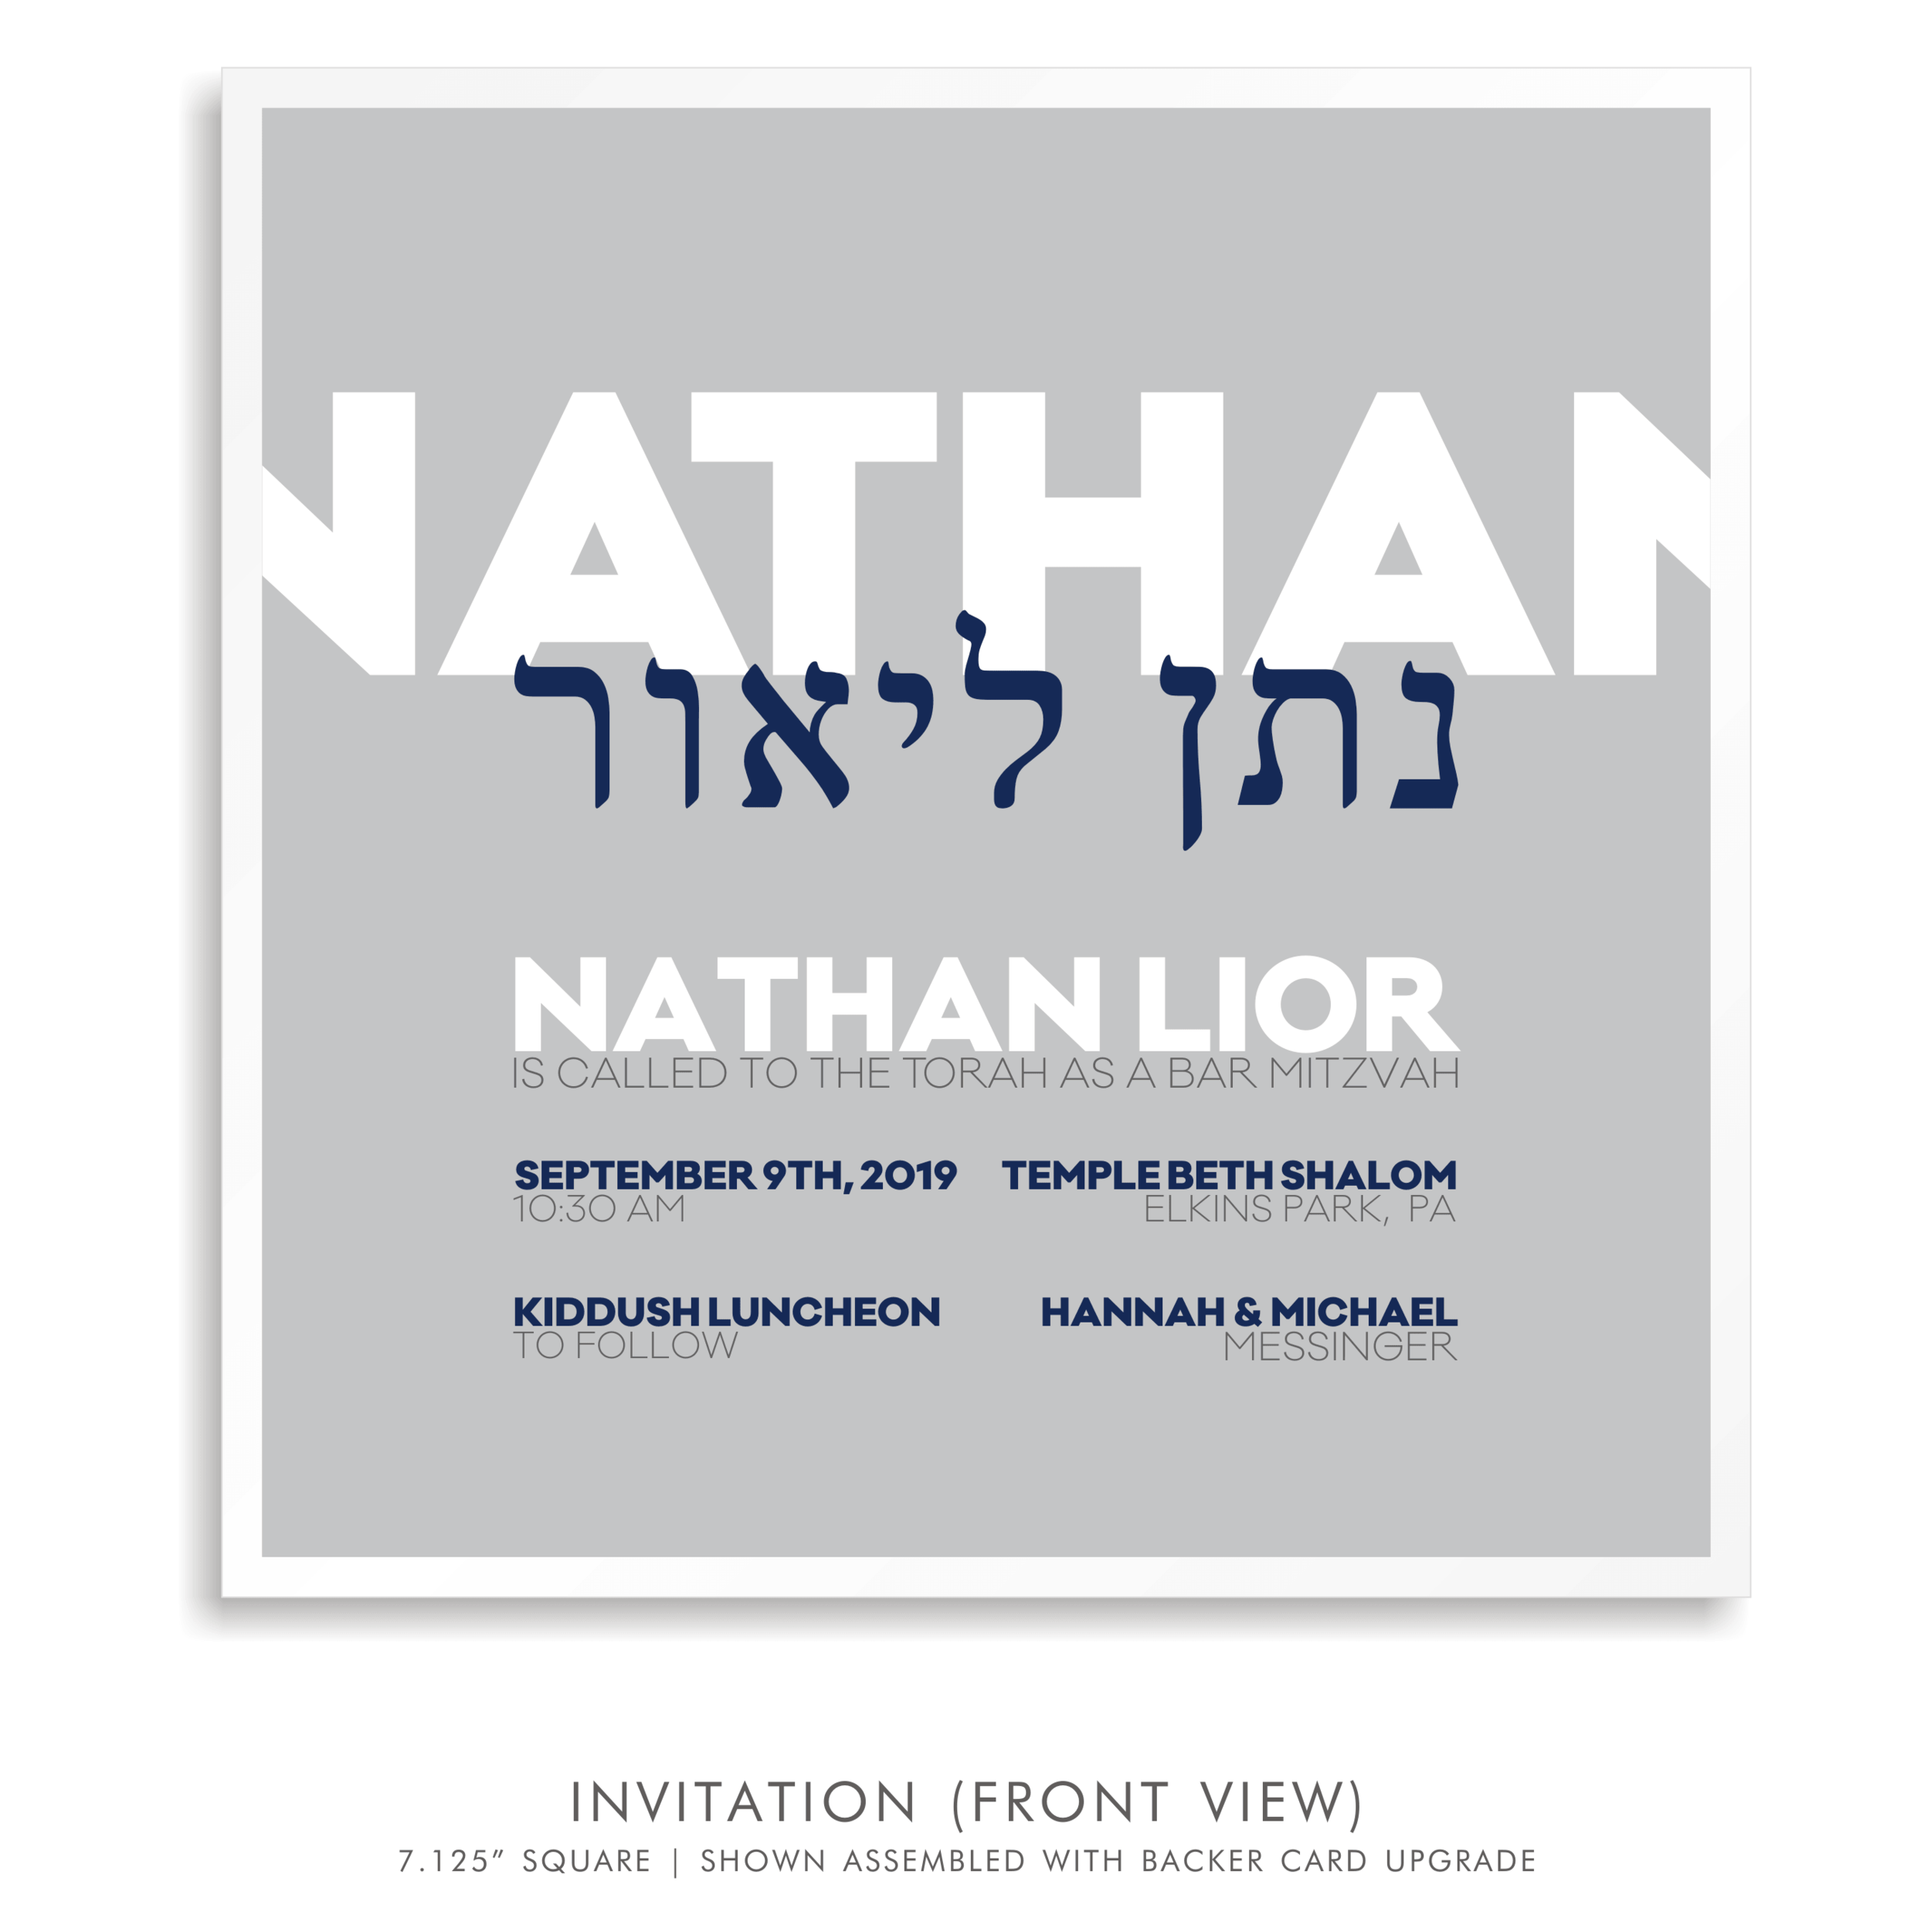 BAT MITZVAH INVITE SUITE 5263, modern, hebrew, traditional design with blues, silvers